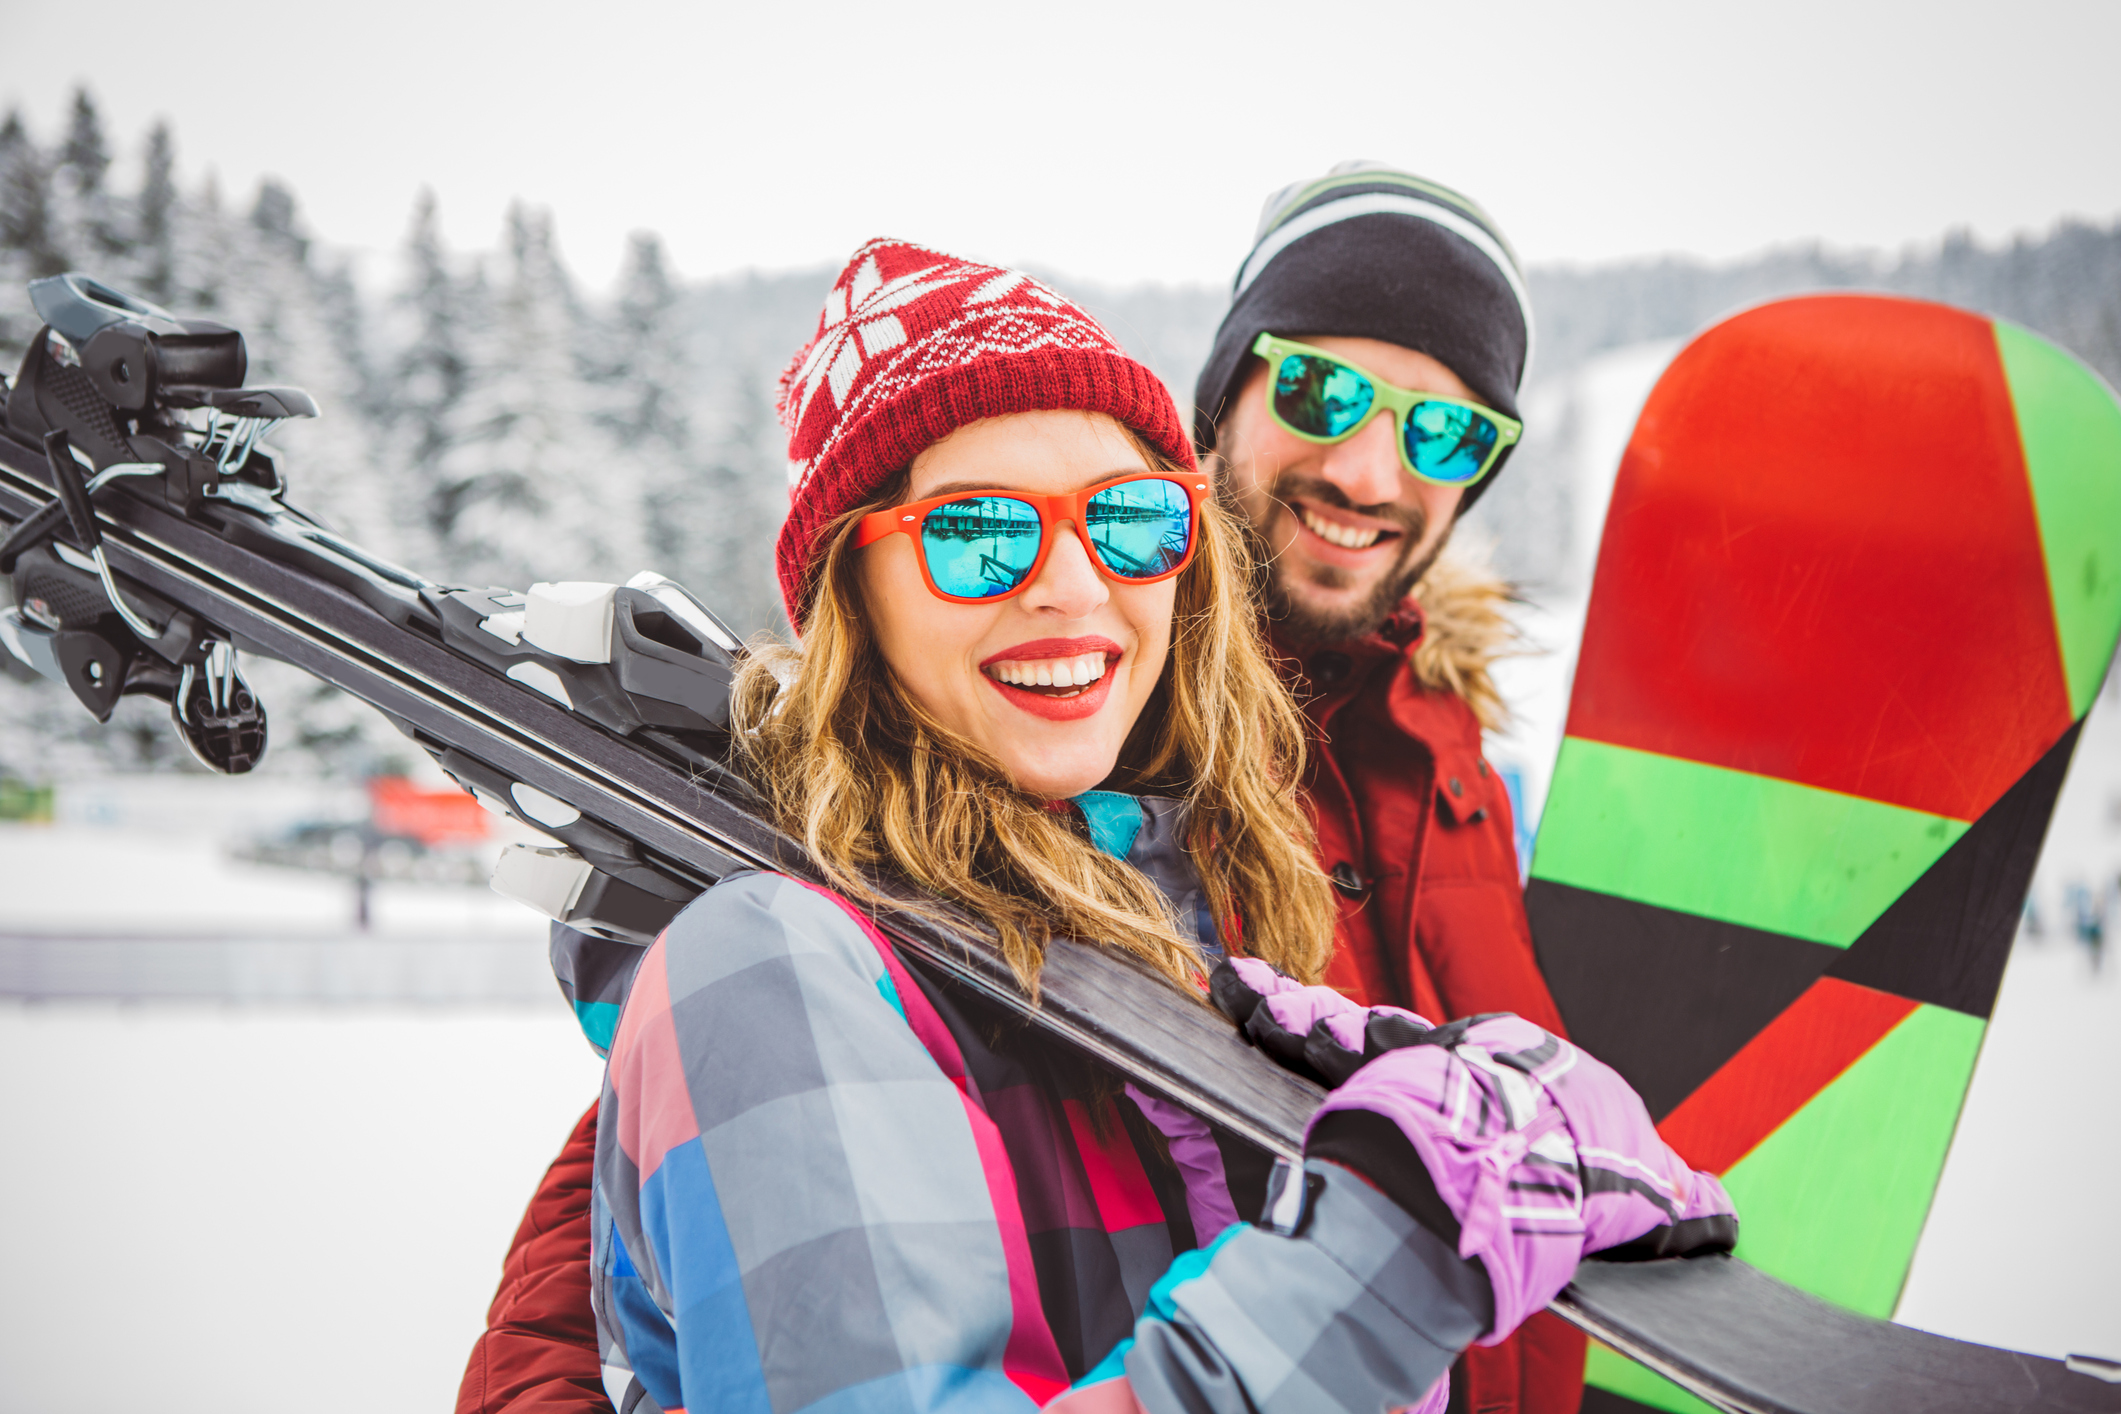 Couple on Winter Vacation Holding Ski Gear